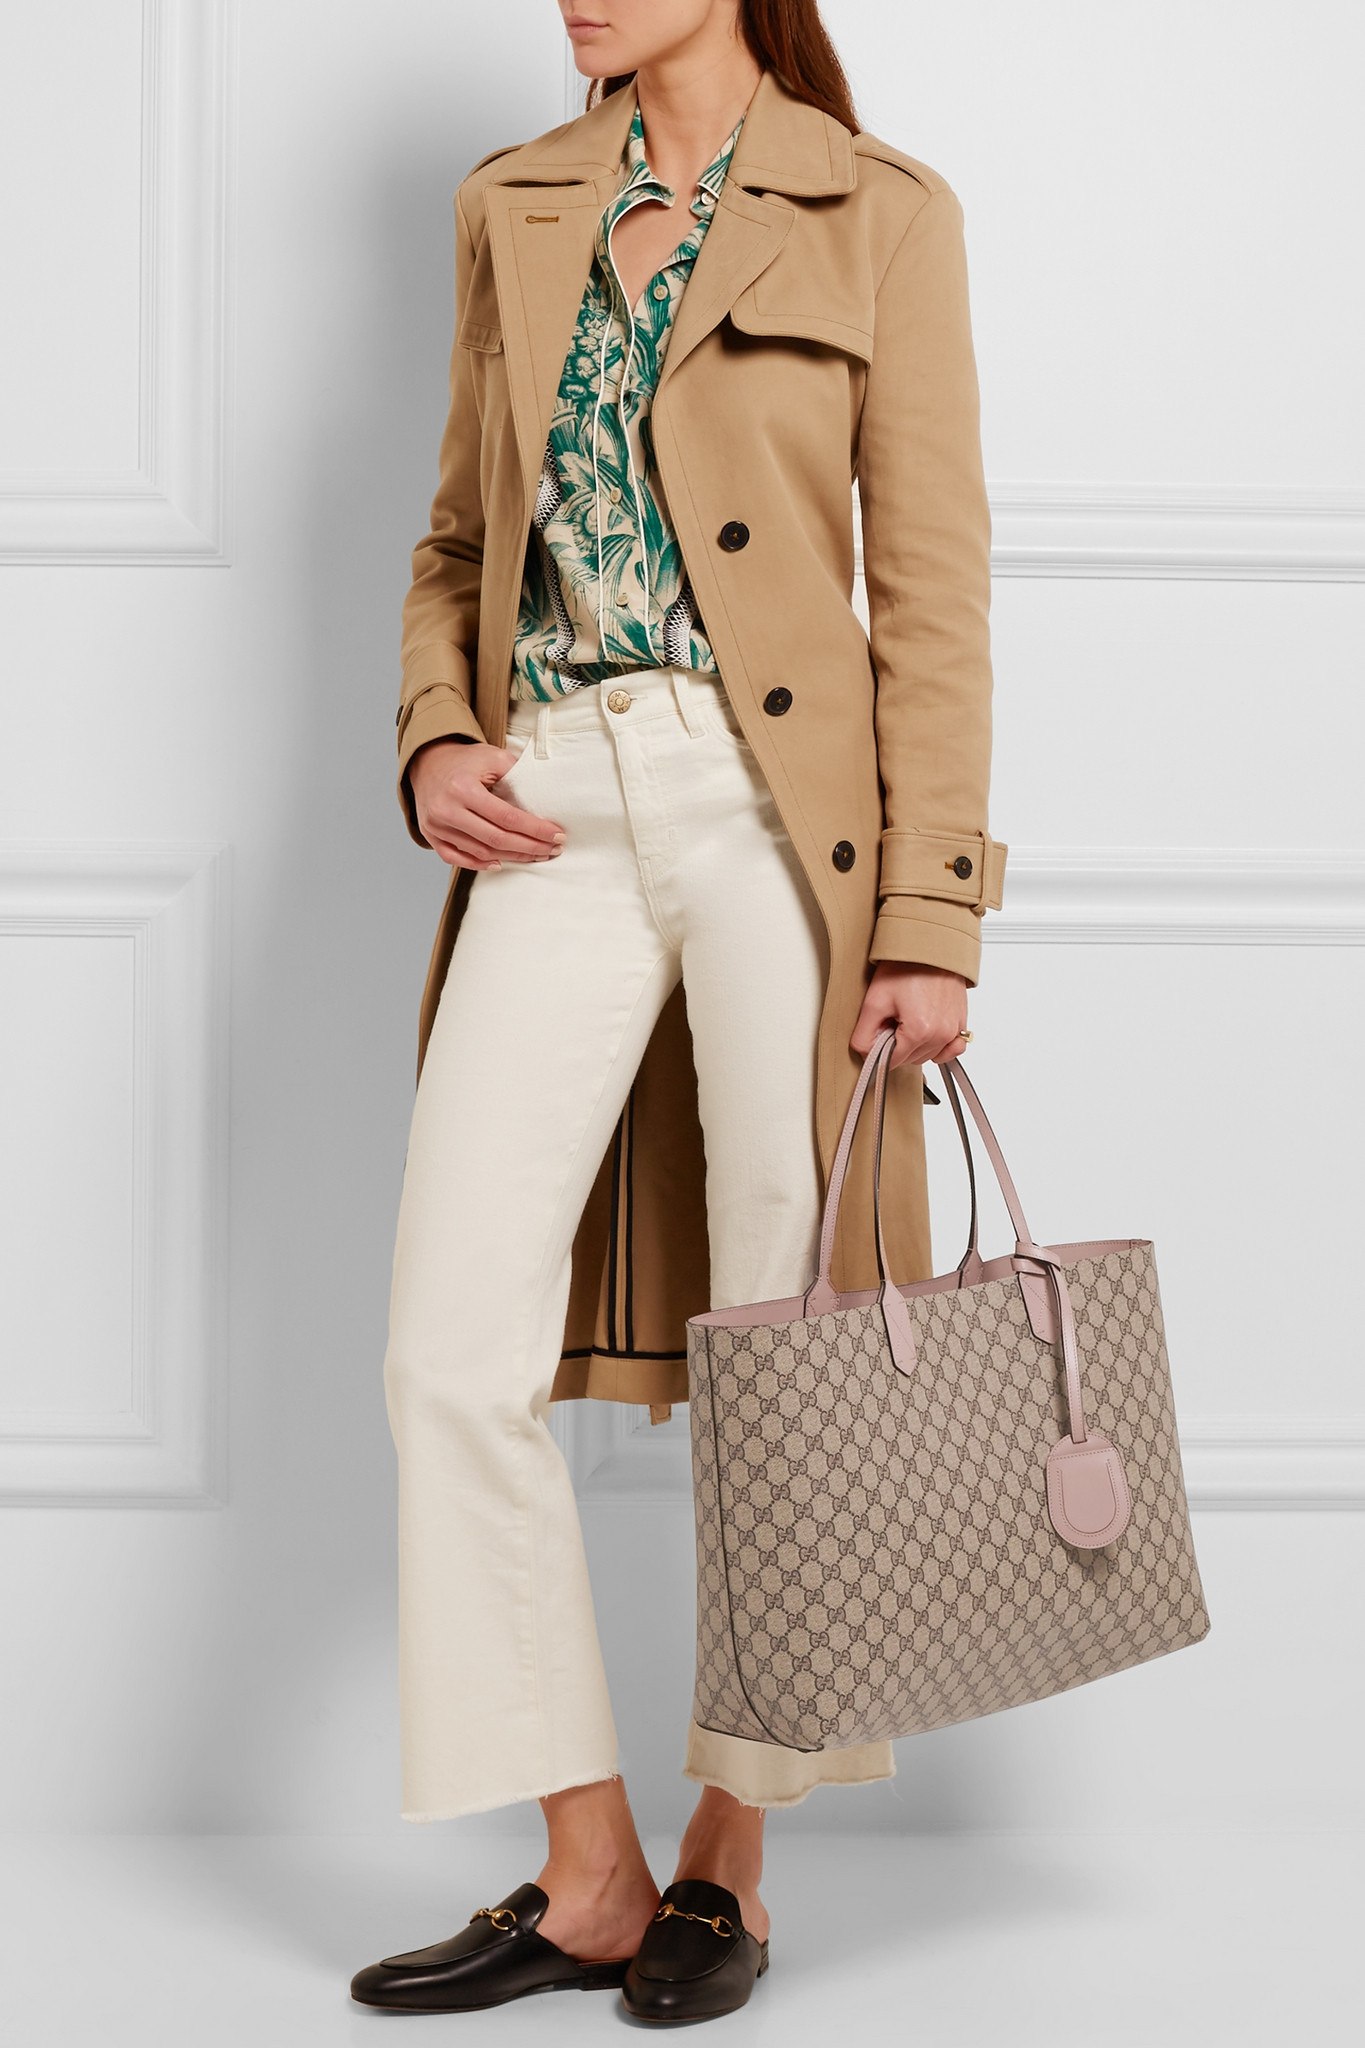 c39455f7b9c3 Gucci Turnaround Medium Reversible Textured-leather Tote in Natural ...